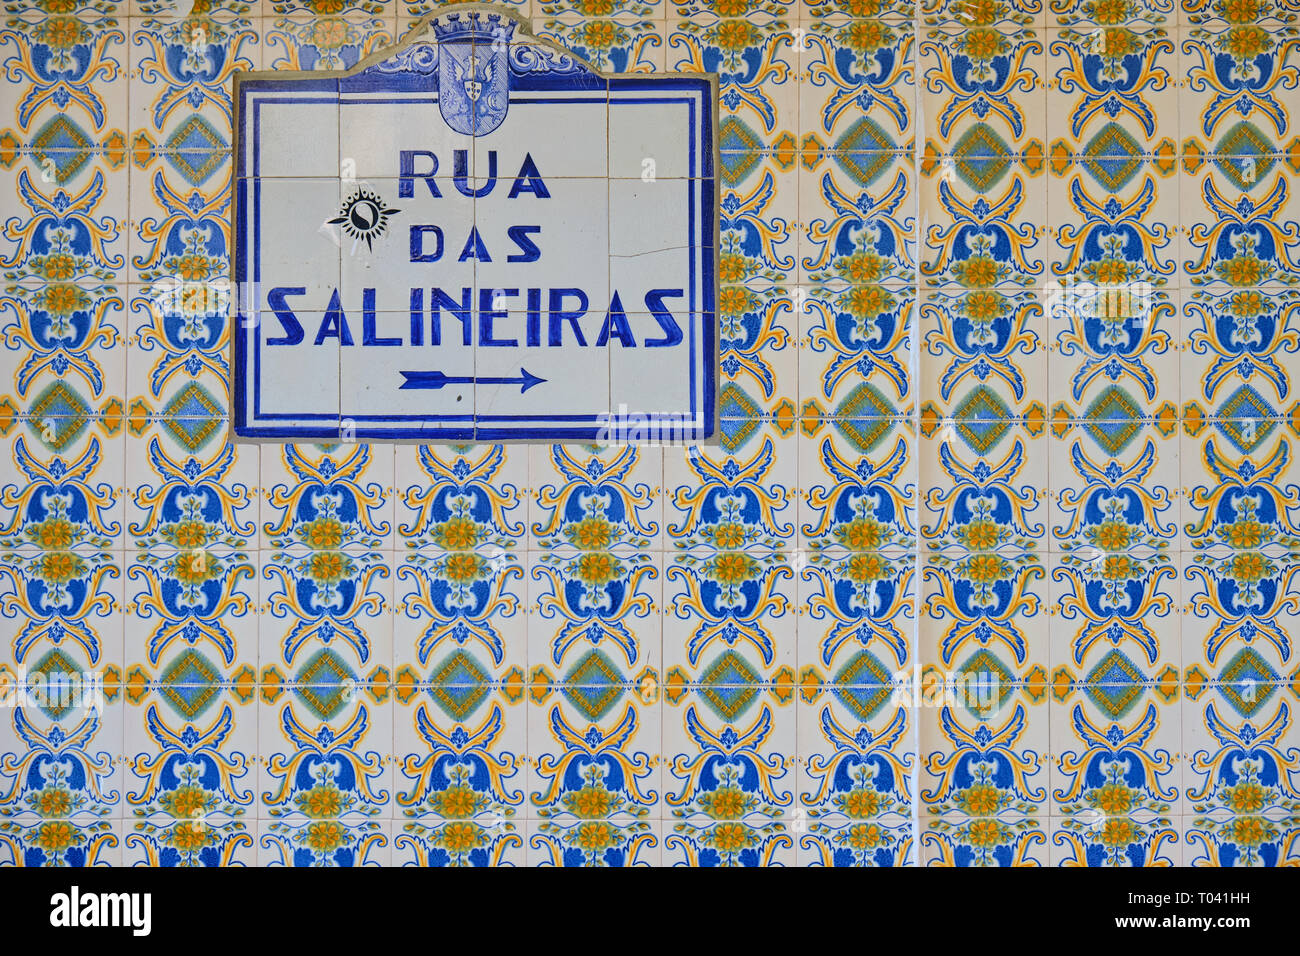 "Azulejos (blue tiles) street signs ""Rua das Salineiras"" on wall on blue and yellow tiles.  Aveiro, Portugal Stock Photo"